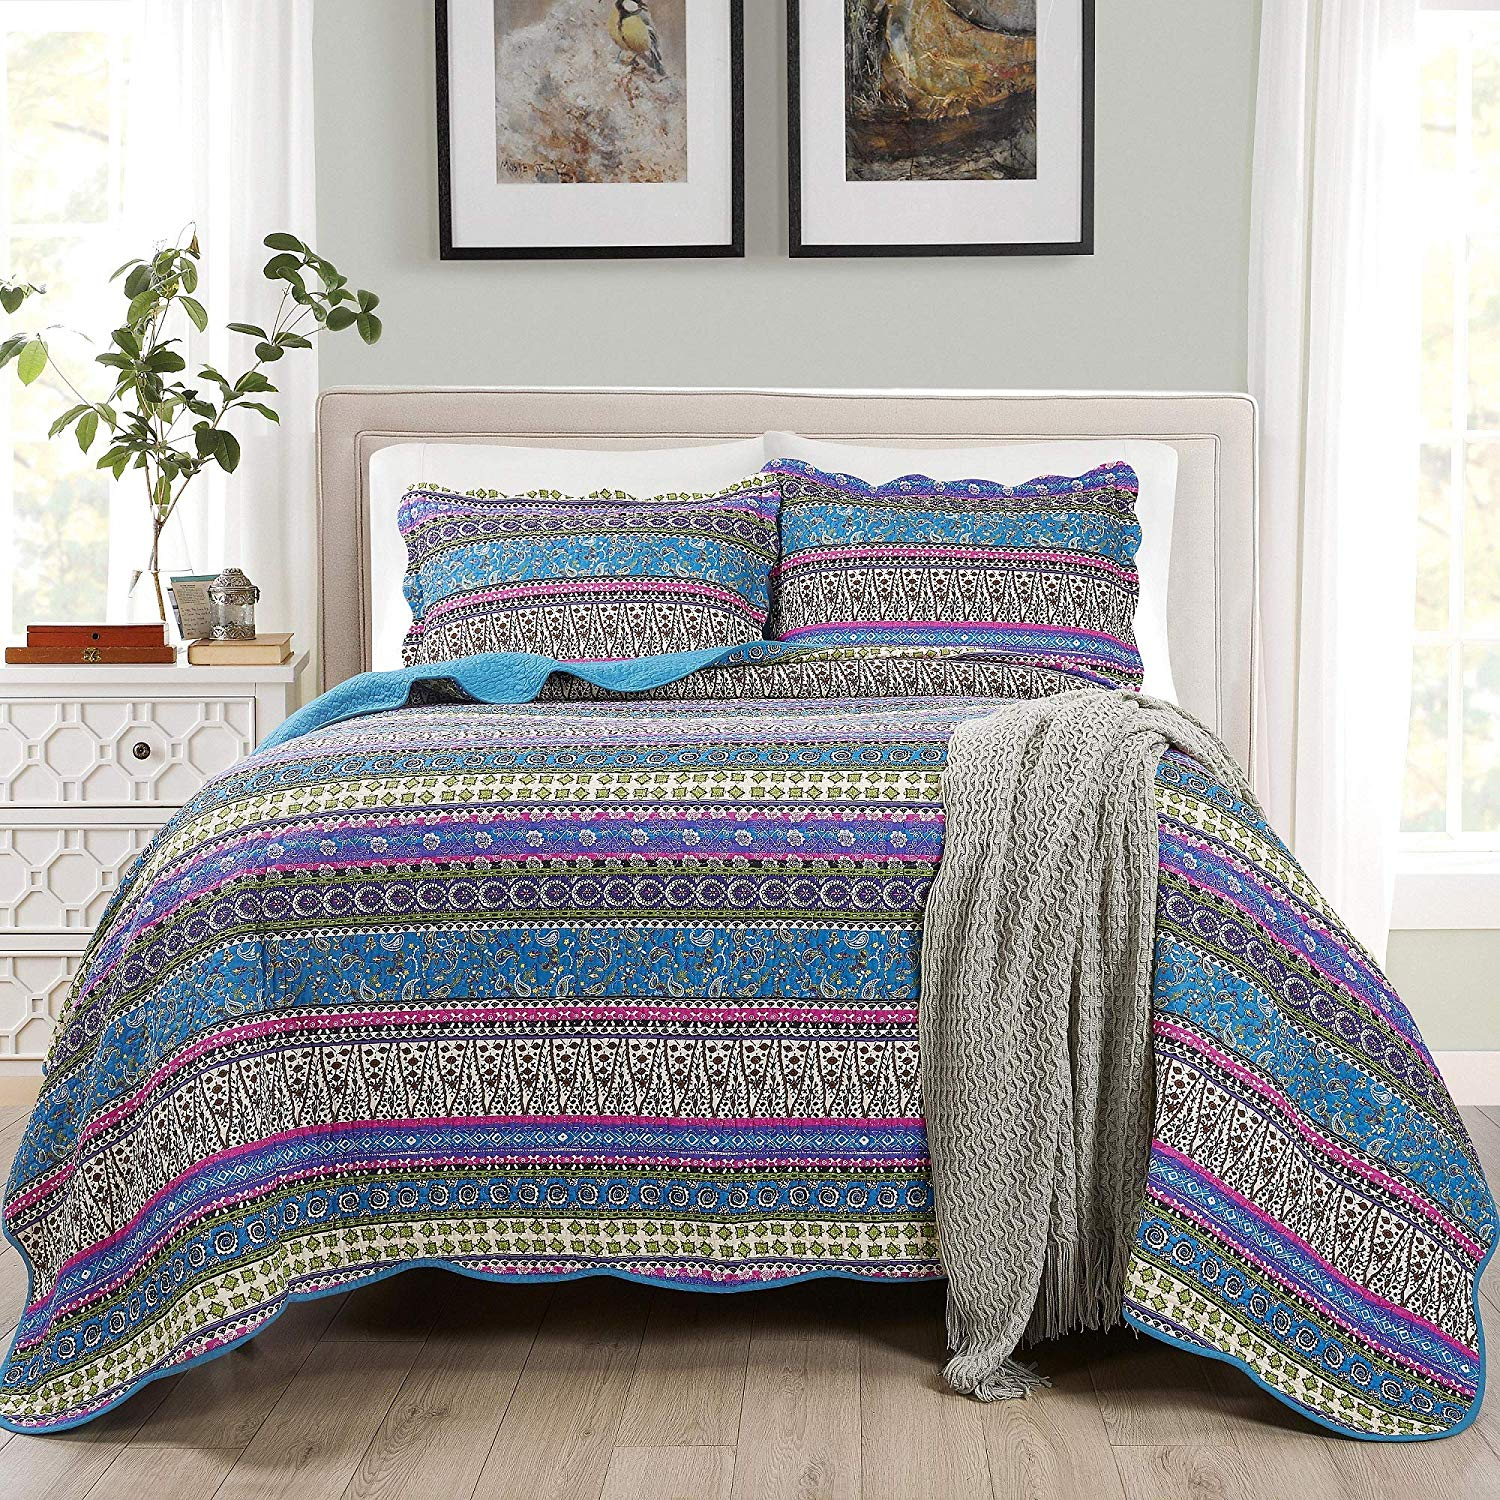 Chezmoi Collection Odette 3-Piece Boho Chic 100% Soft Cotton Bohemian Bedspread Quilt Set